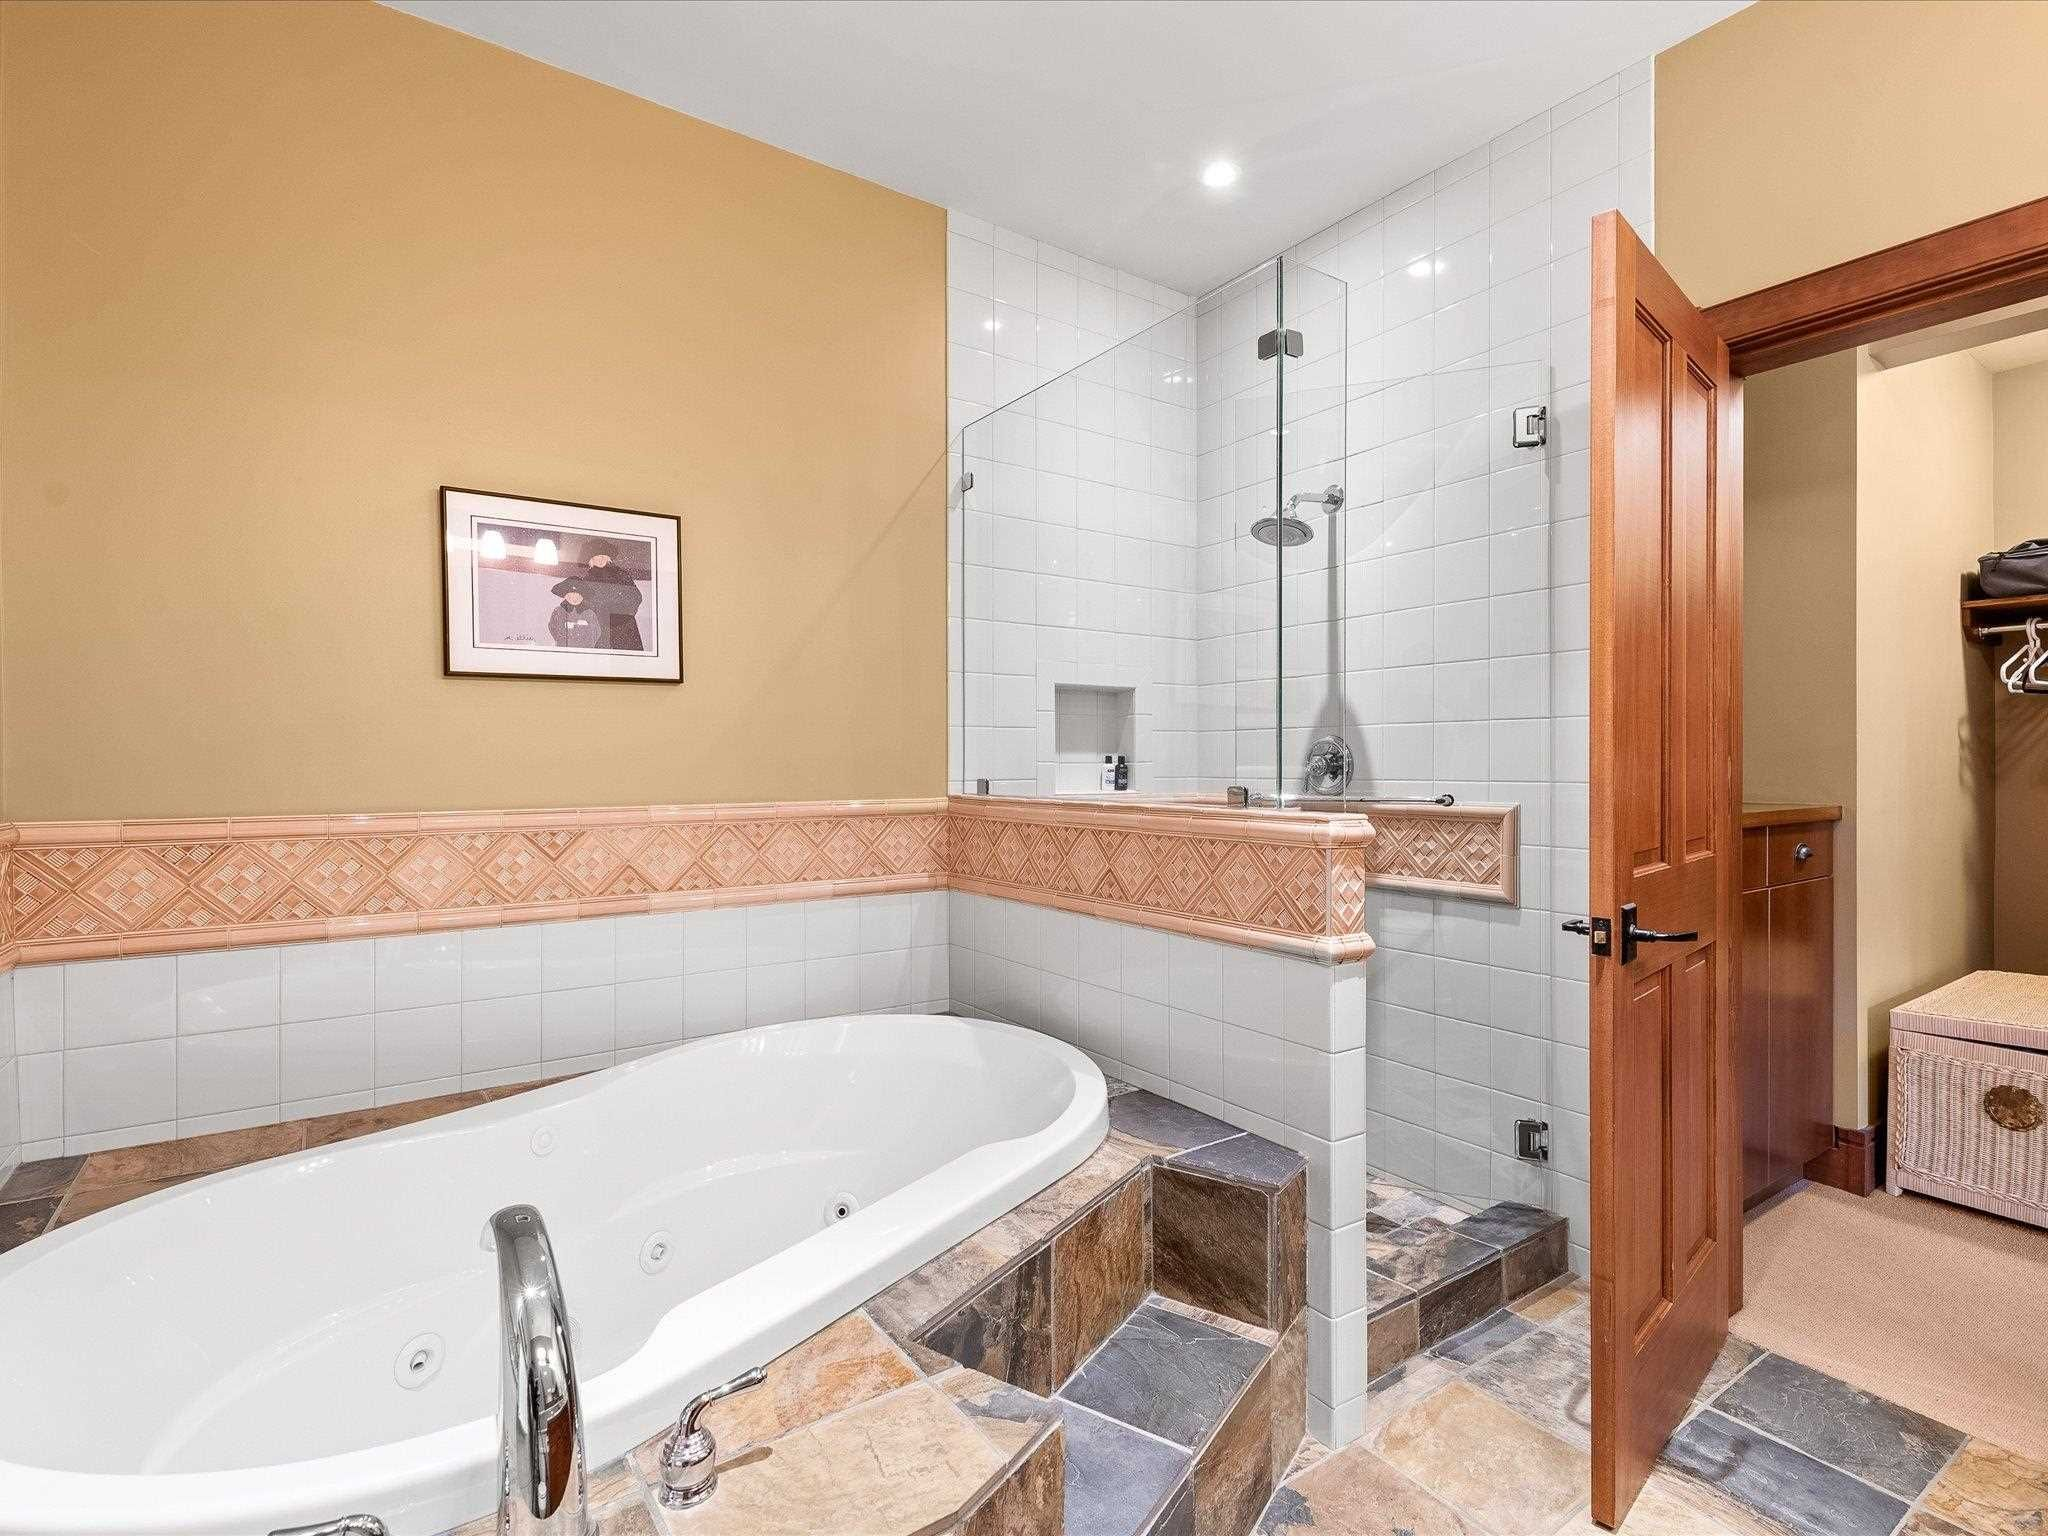 Photo 13: Photos: 4 2500 TALUSWOOD PLACE in Whistler: Nordic Townhouse for sale : MLS®# R2593995